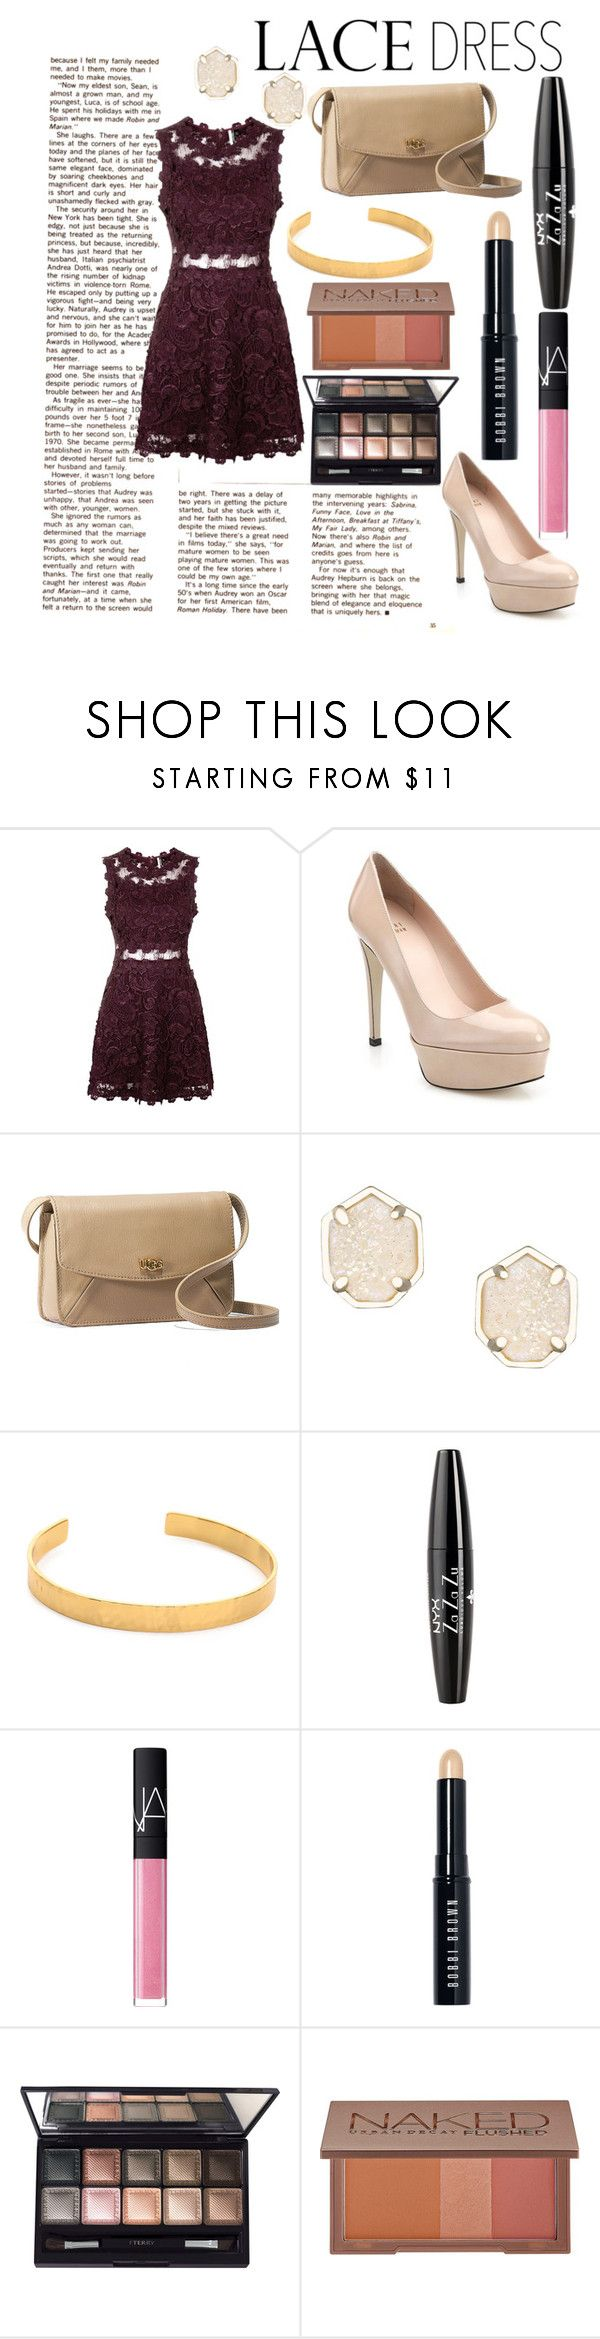 """""""Lace Dress"""" by carolynevers ❤ liked on Polyvore featuring Topshop, Stuart Weitzman, UGG Australia, Kendra Scott, Gorjana, NYX, NARS Cosmetics, Bobbi Brown Cosmetics, By Terry and Urban Decay"""